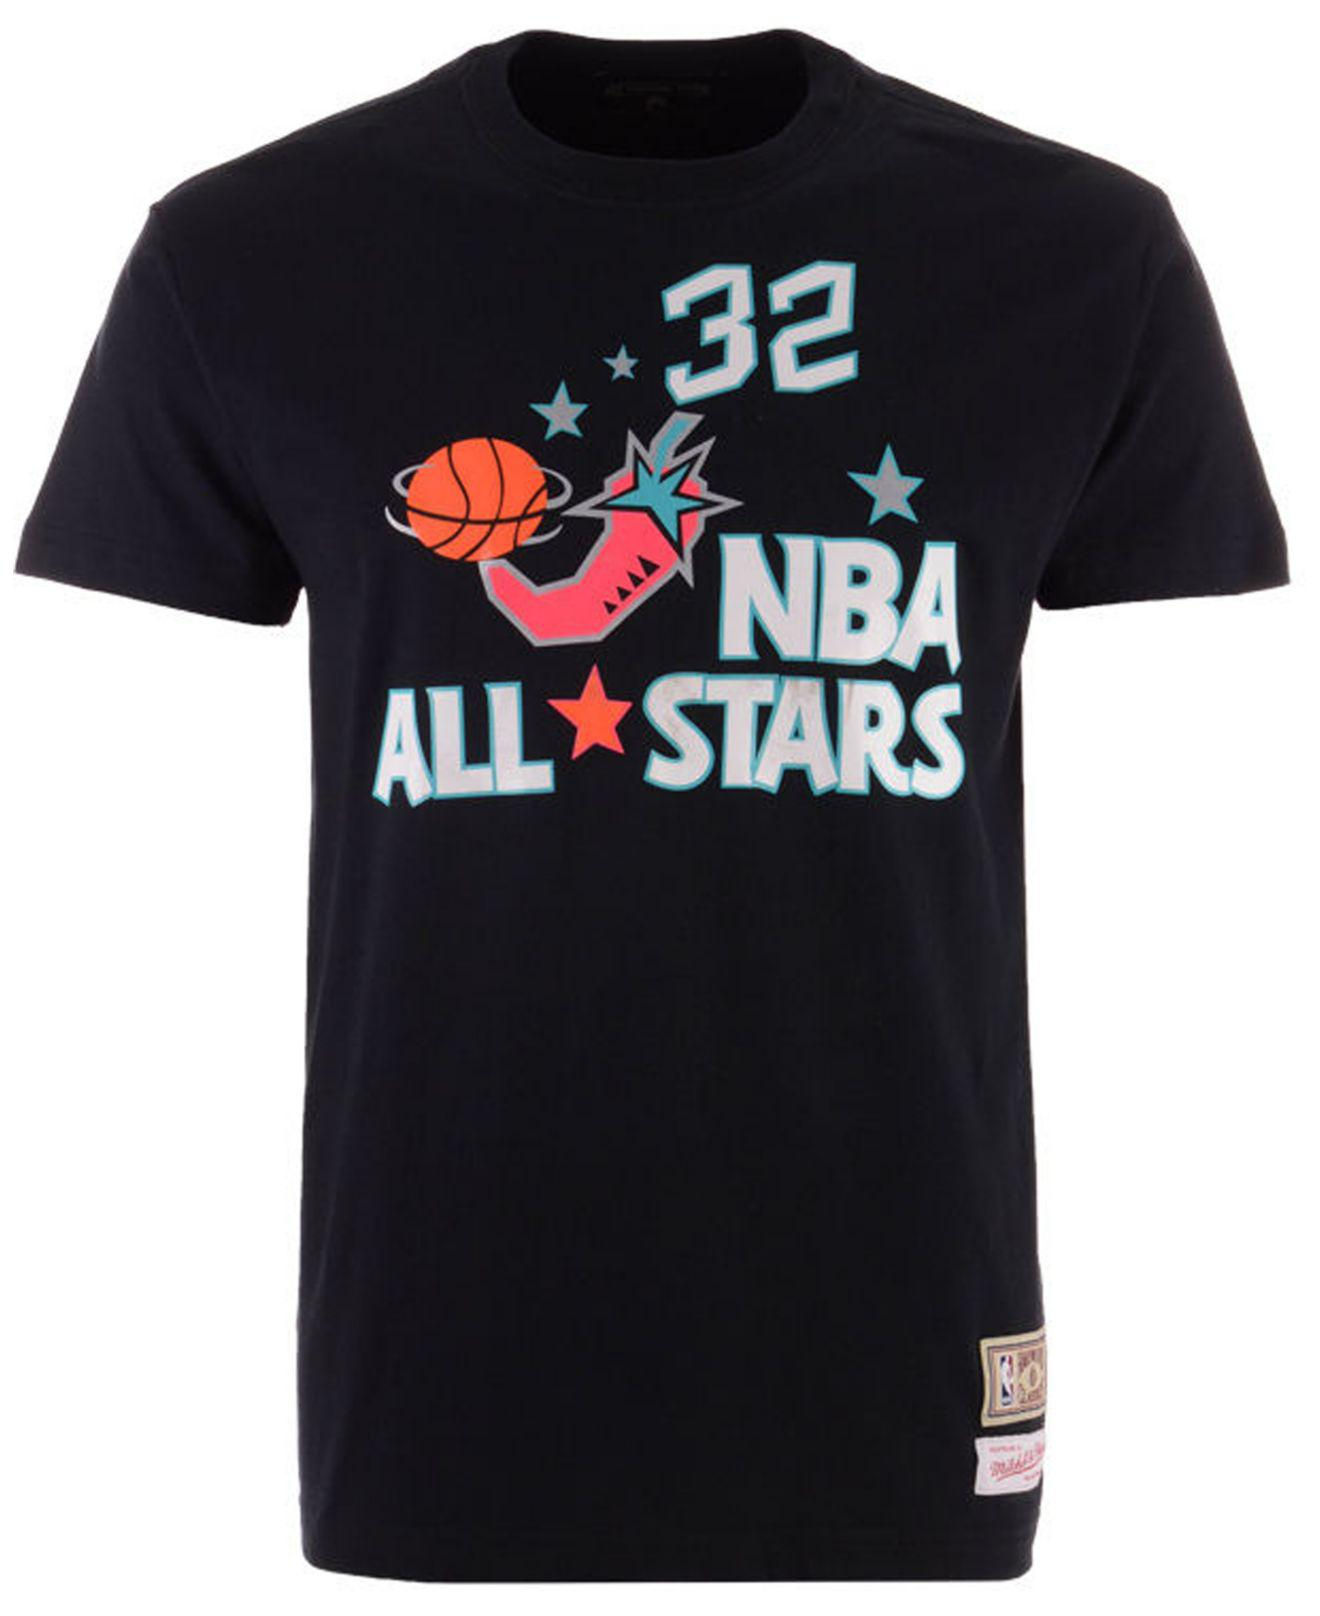 c6df91e8b Lyst - Mitchell   Ness Shaquille O neal Nba All Star 1996 Name   Number  Traditional T-shirt in Black for Men